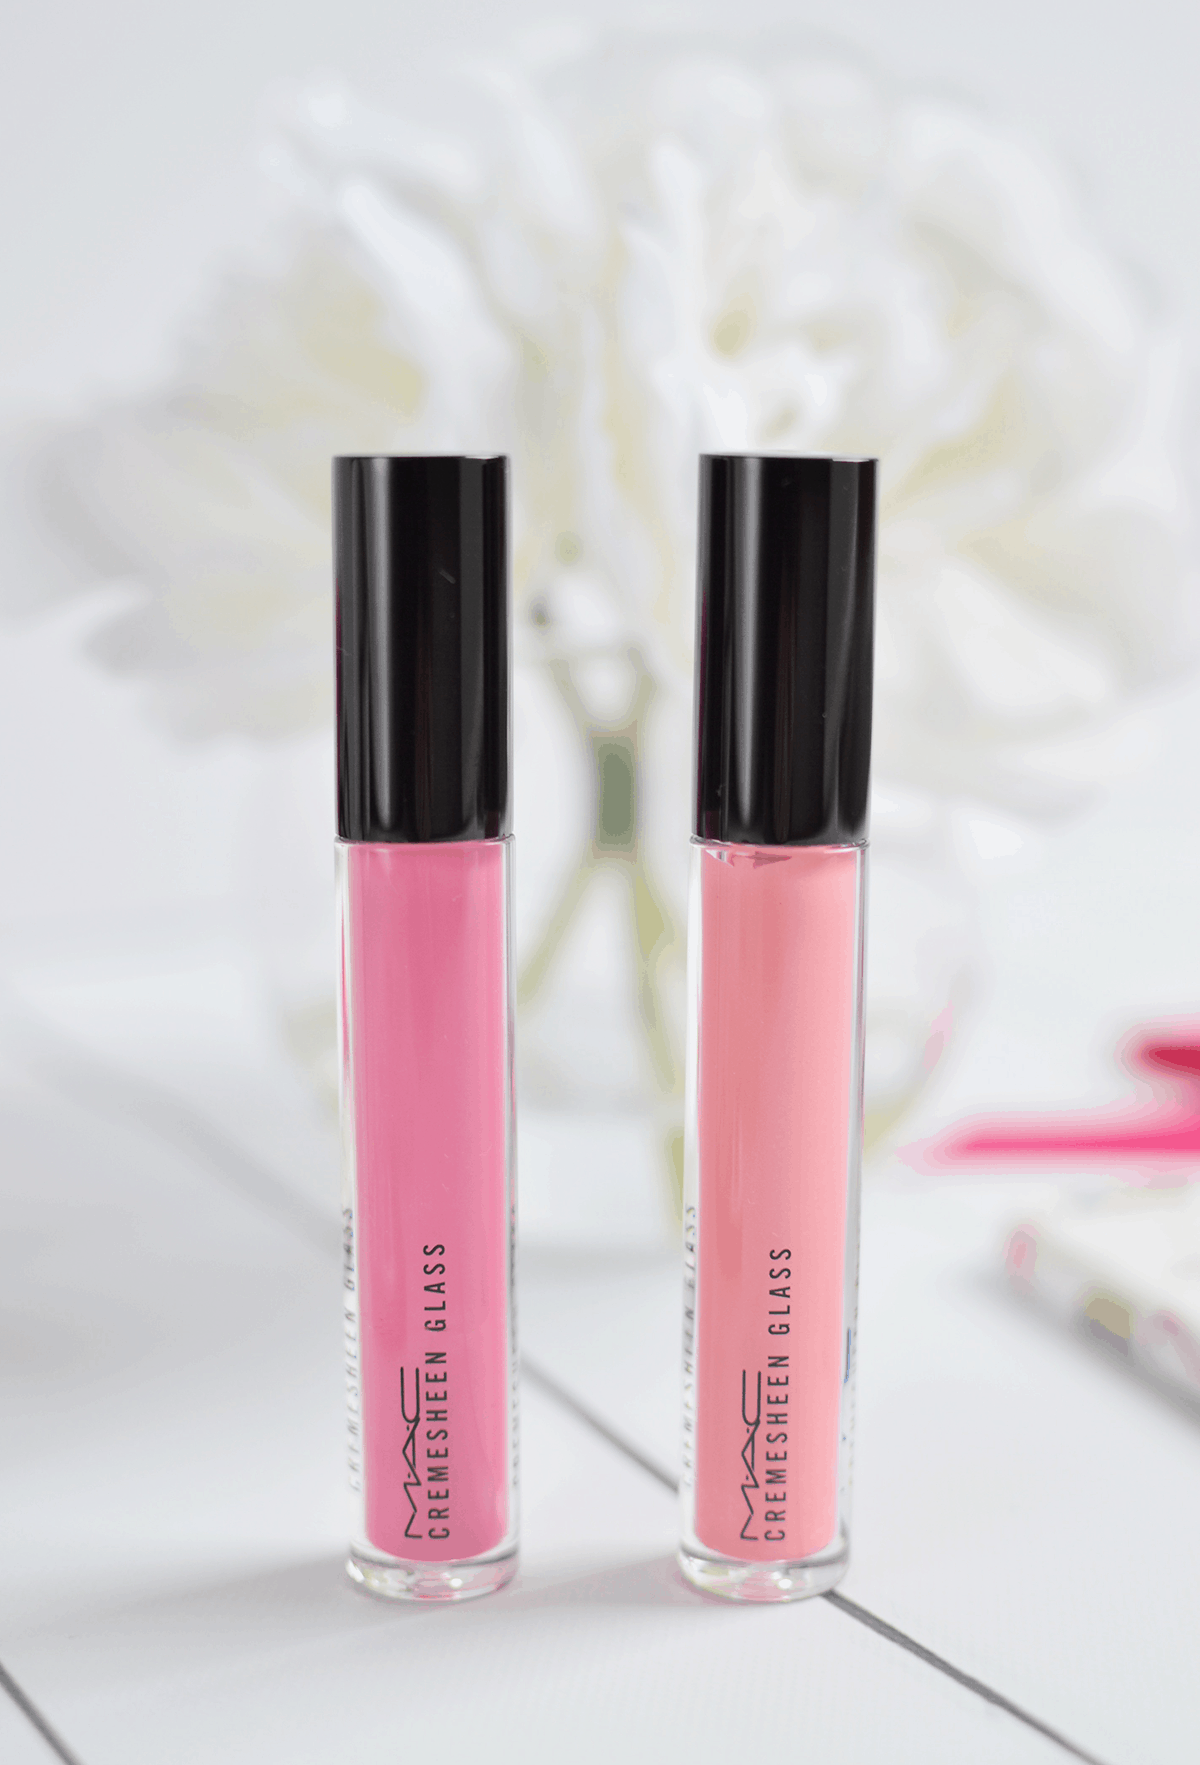 MAC Flamingo Park Collection // Cremesheen Glass in Sweet Tooth and Petite Indulgence | oliveandivyblog.com